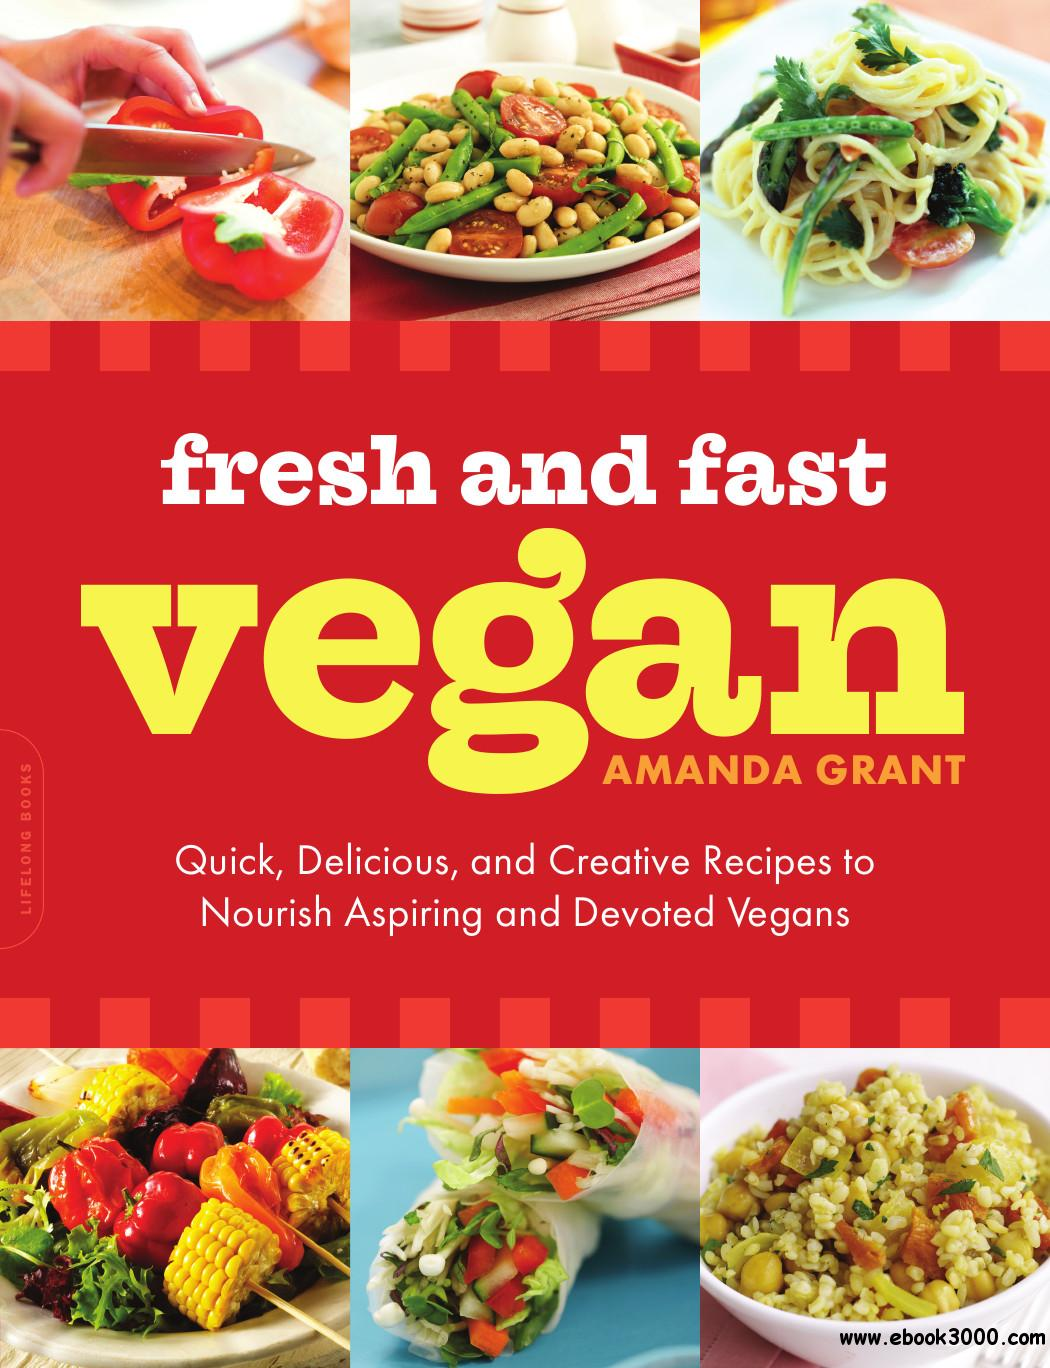 Fresh and Fast Vegan: Quick, Delicious, and Creative Recipes to Nourish Aspiring and Devoted Vegans free download